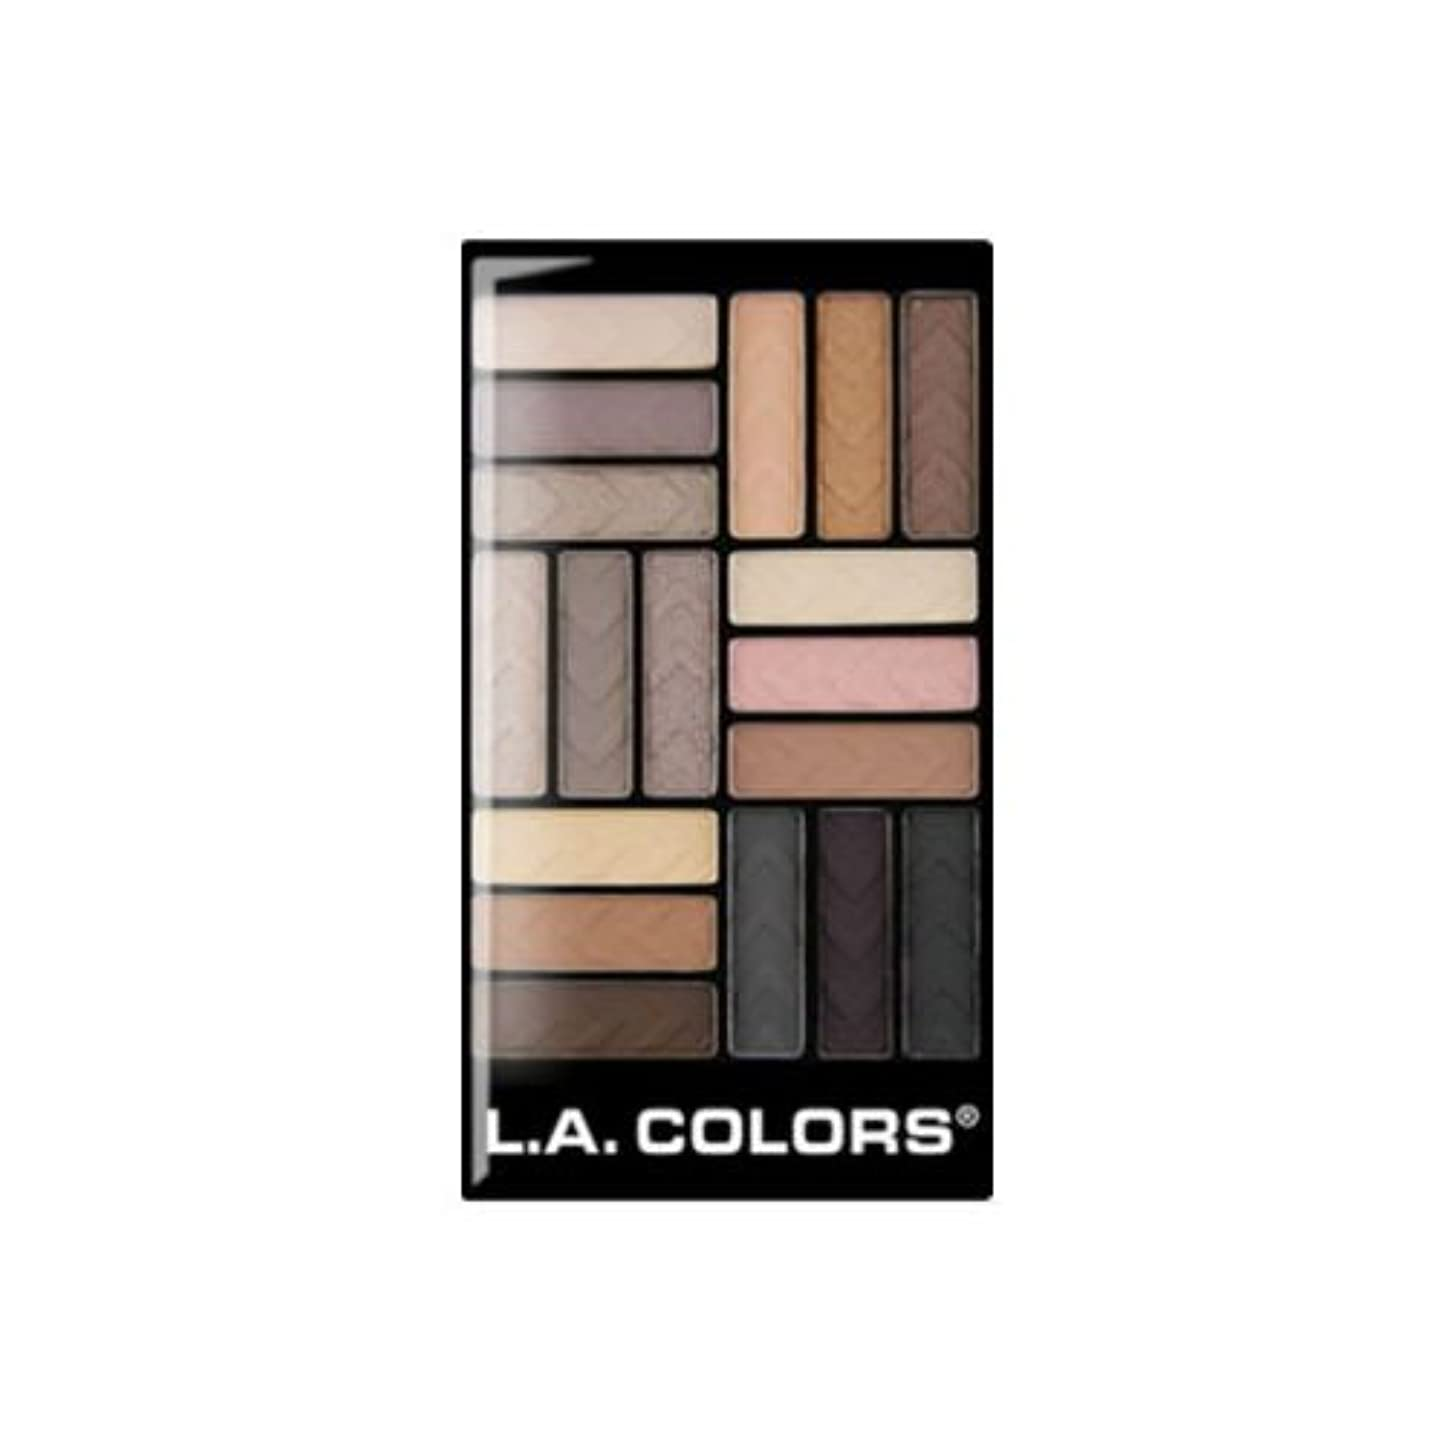 (3 Pack) L.A. COLORS 18 Color Eyeshadow - Downtown Brown (並行輸入品)